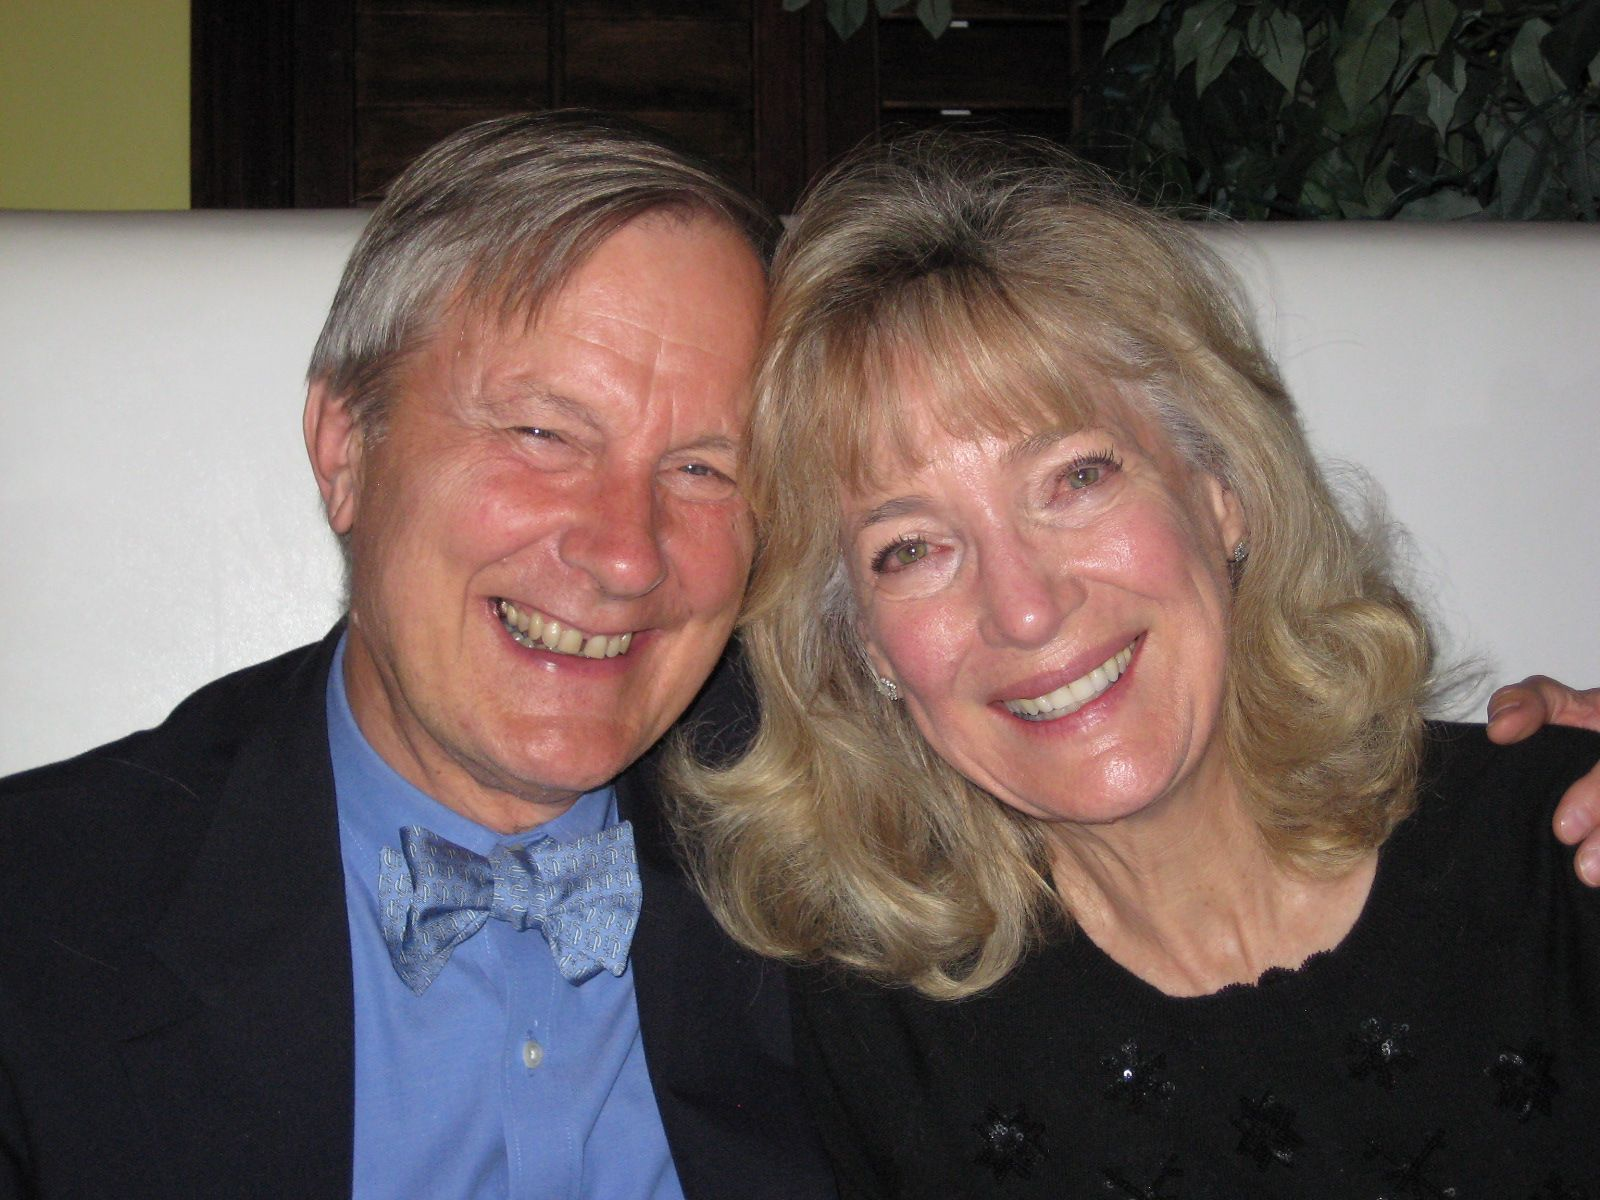 Christie and John Brooks '60 in Vero Beach, FL in January 2014